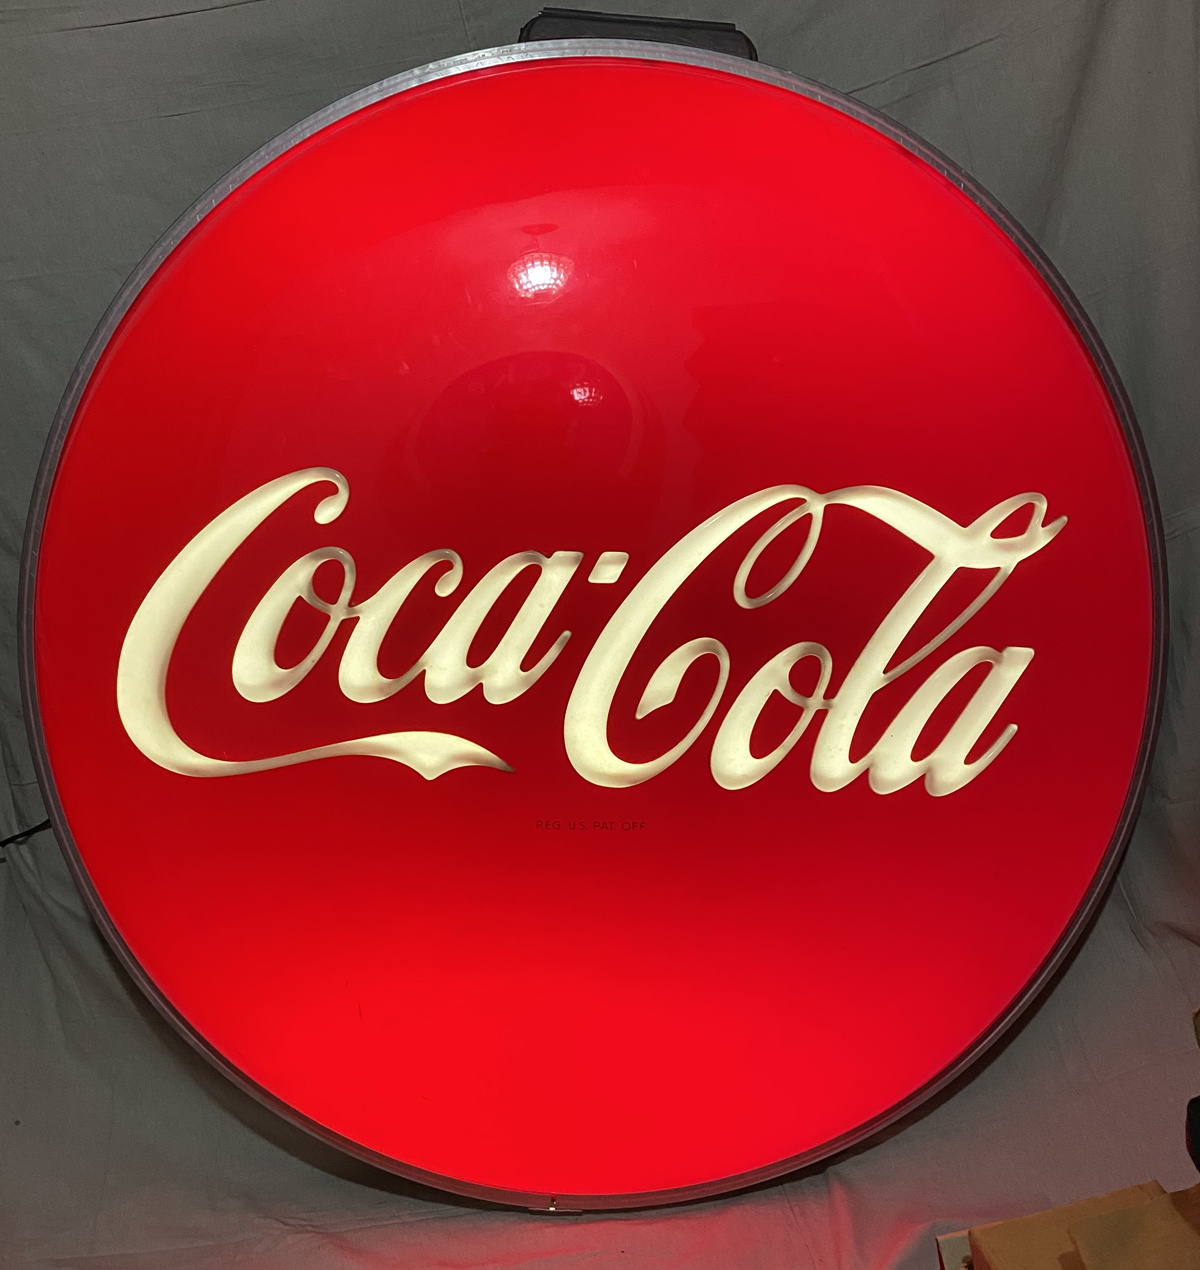 https://0201.nccdn.net/1_2/000/000/101/c10/COKE---BUTTON-LARGE-1200x1270.jpg